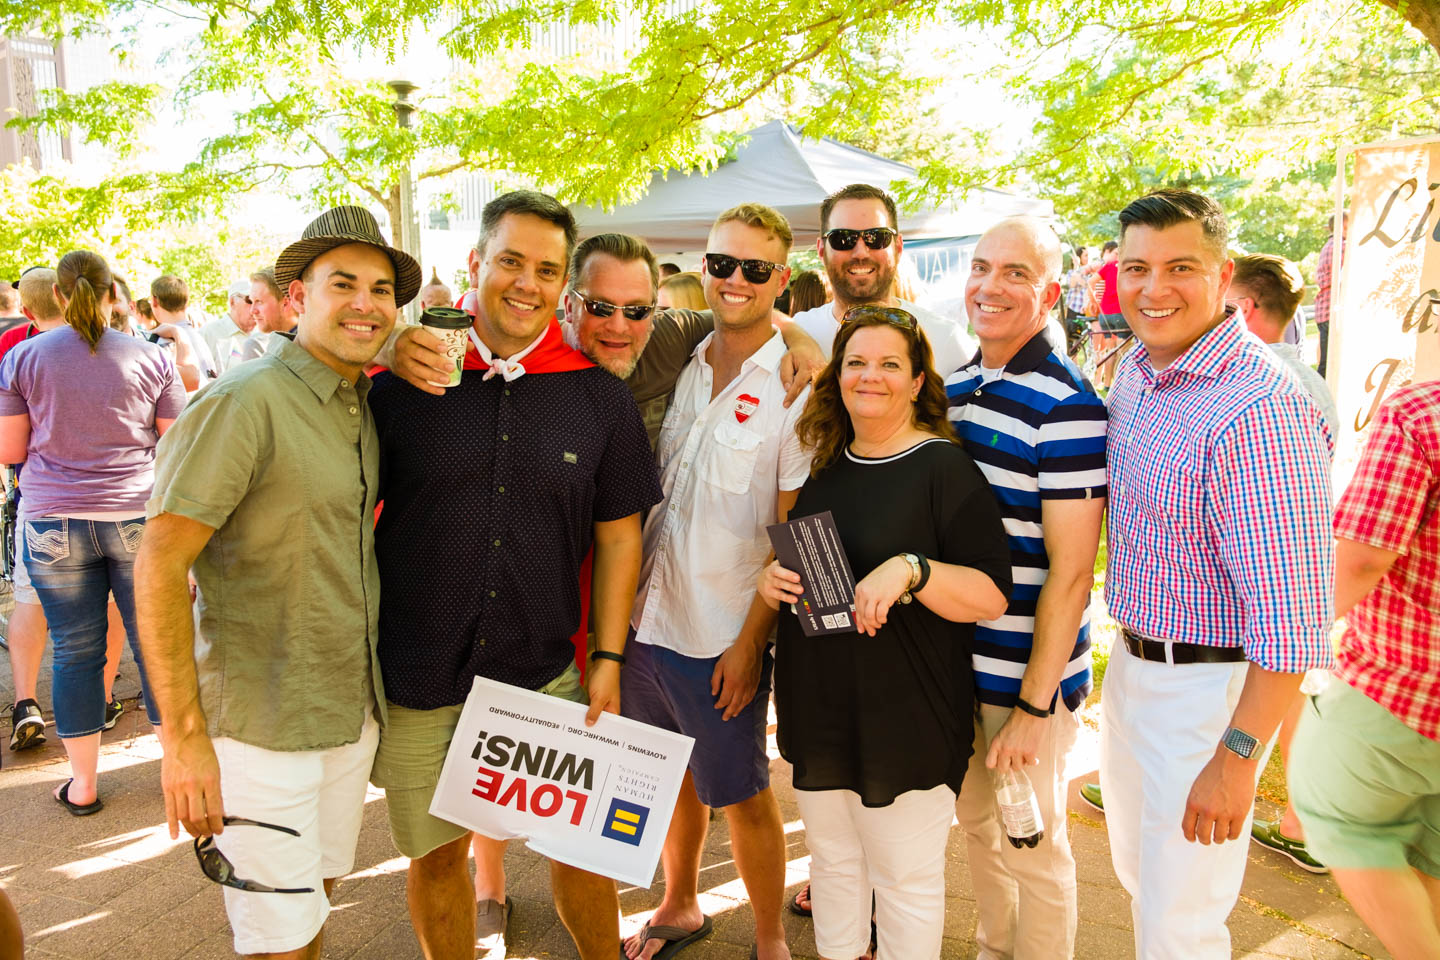 Friends show support for gay marriage nationwide and in Utah